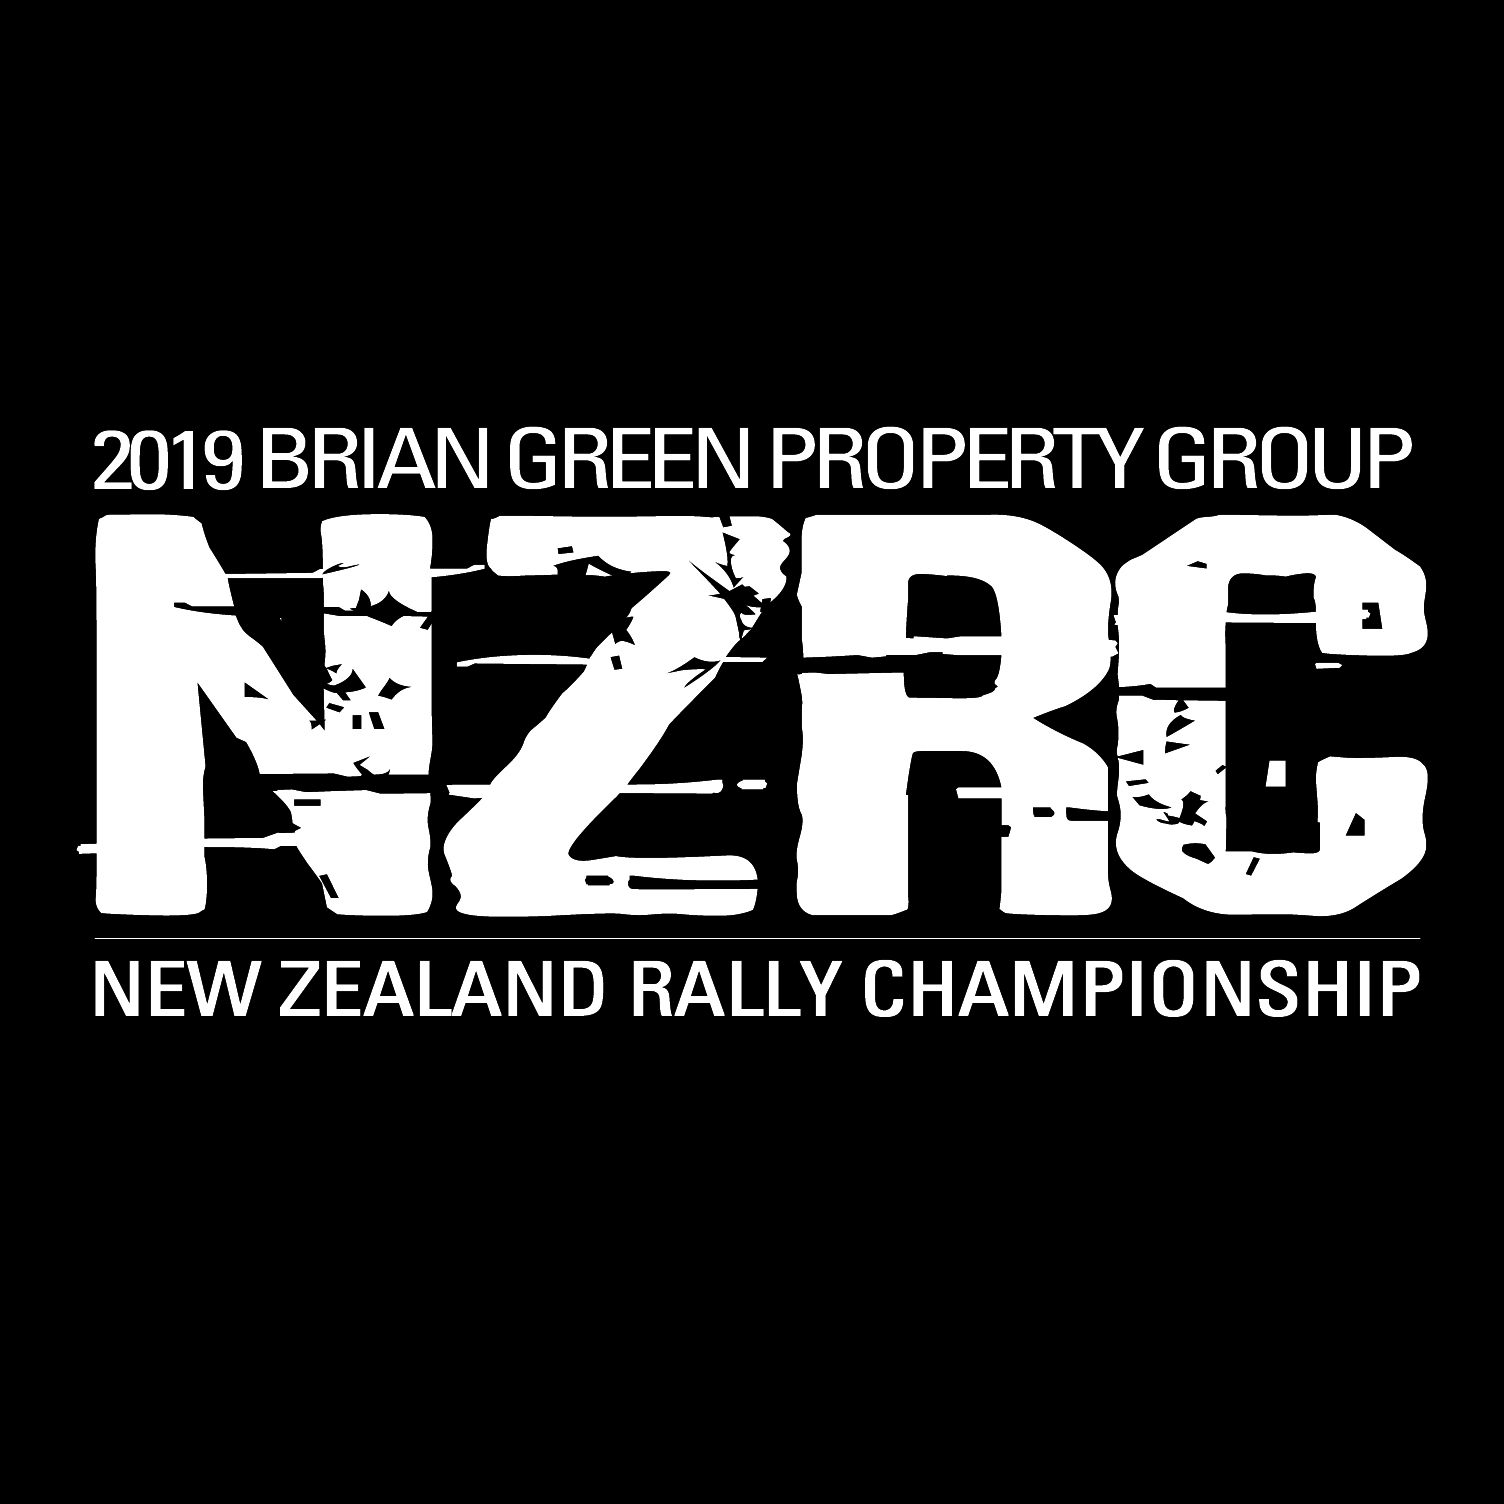 Gilmour offered Middle Eastern cross country rally opportunity | :: Brian Green Property Group New Zealand Rally Championship ::